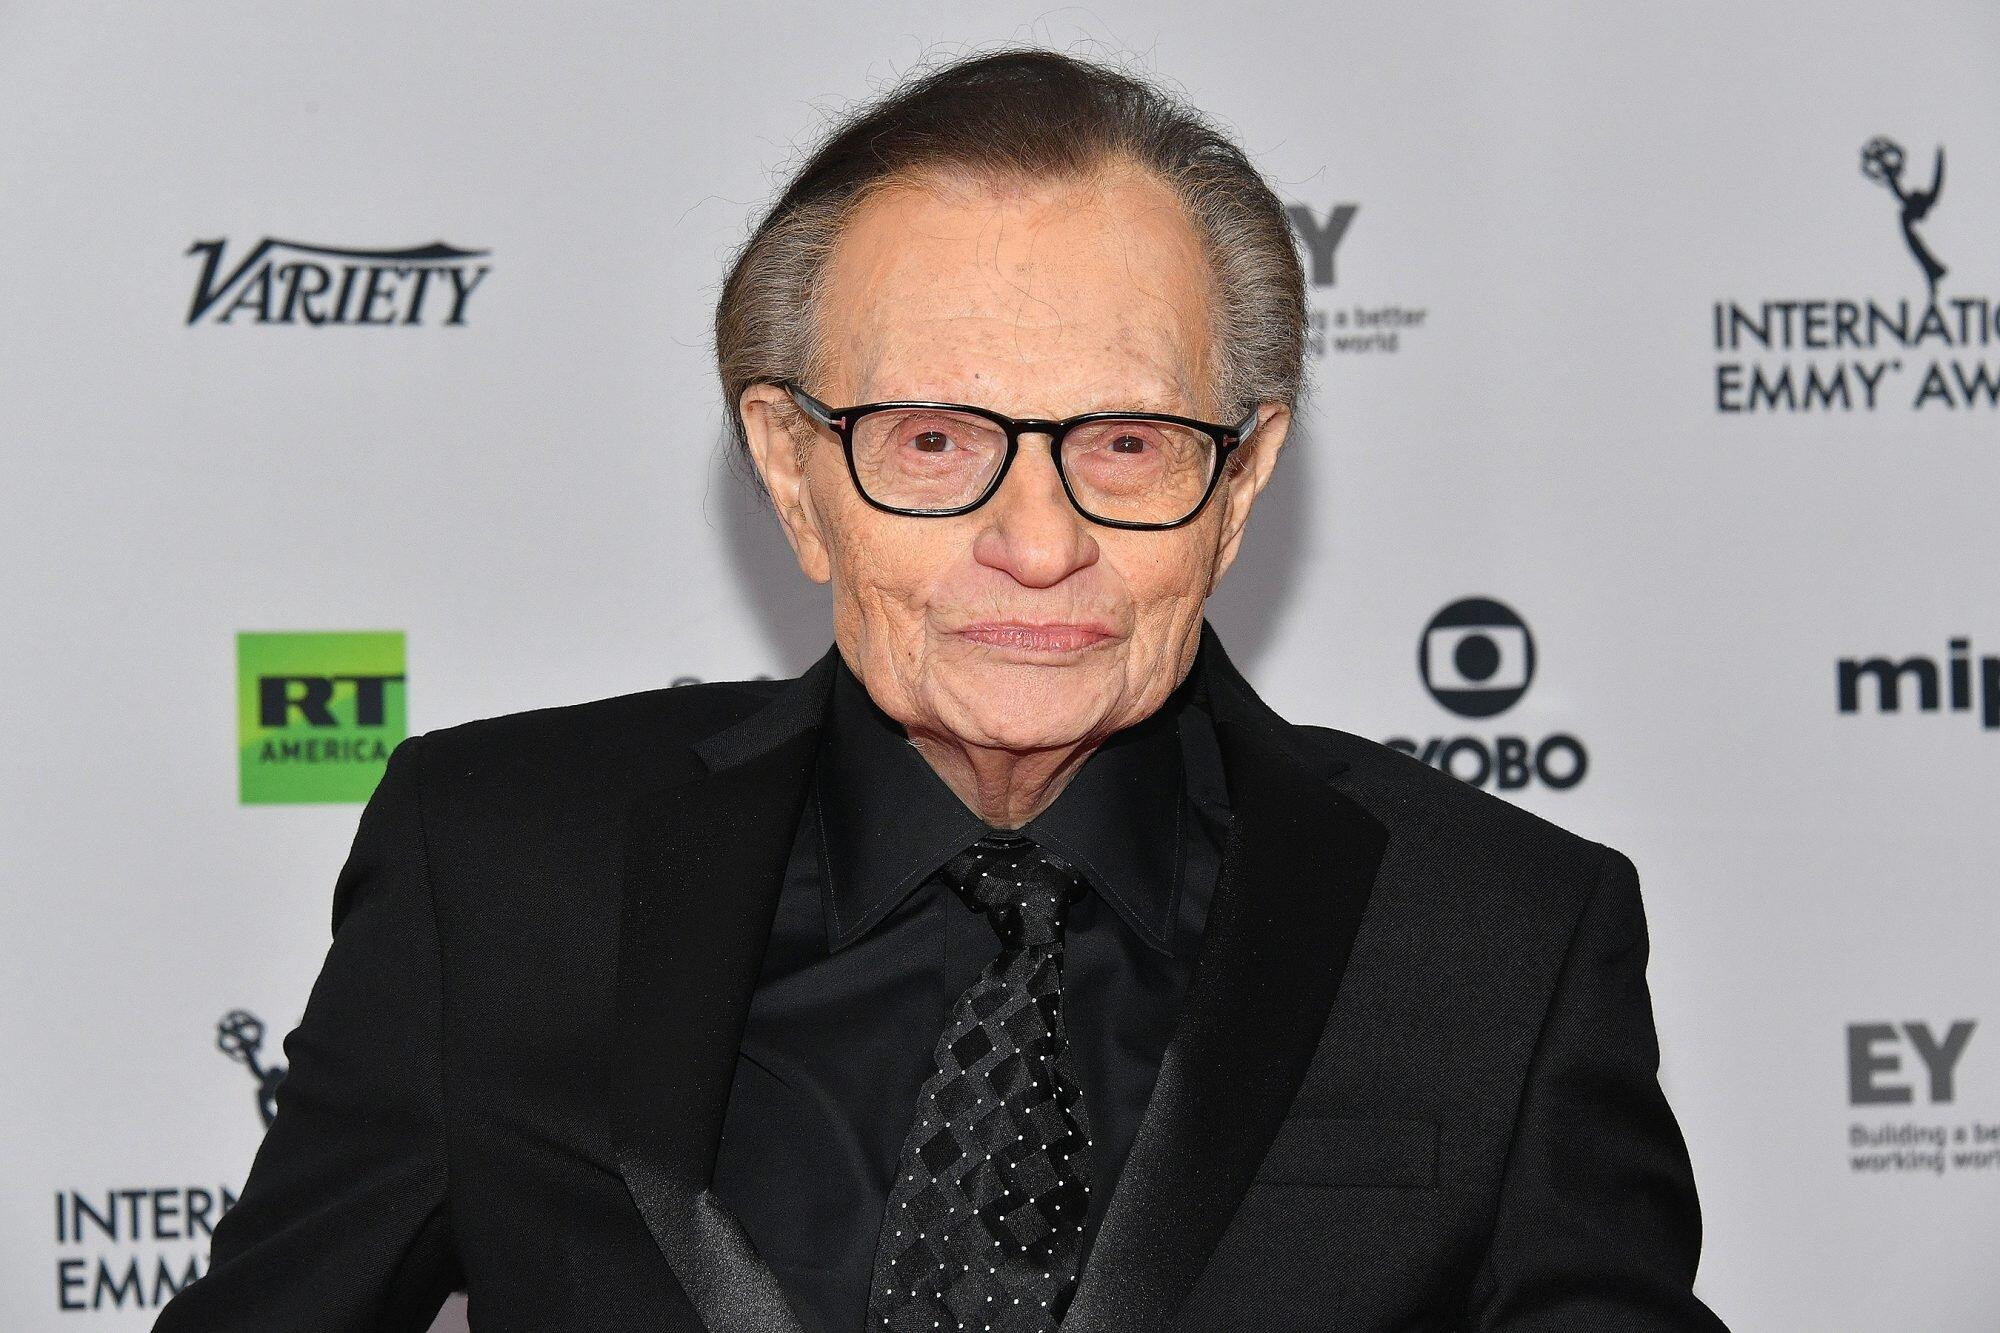 Larry King, Legendary Journalist and Radio Host, Dies at 87